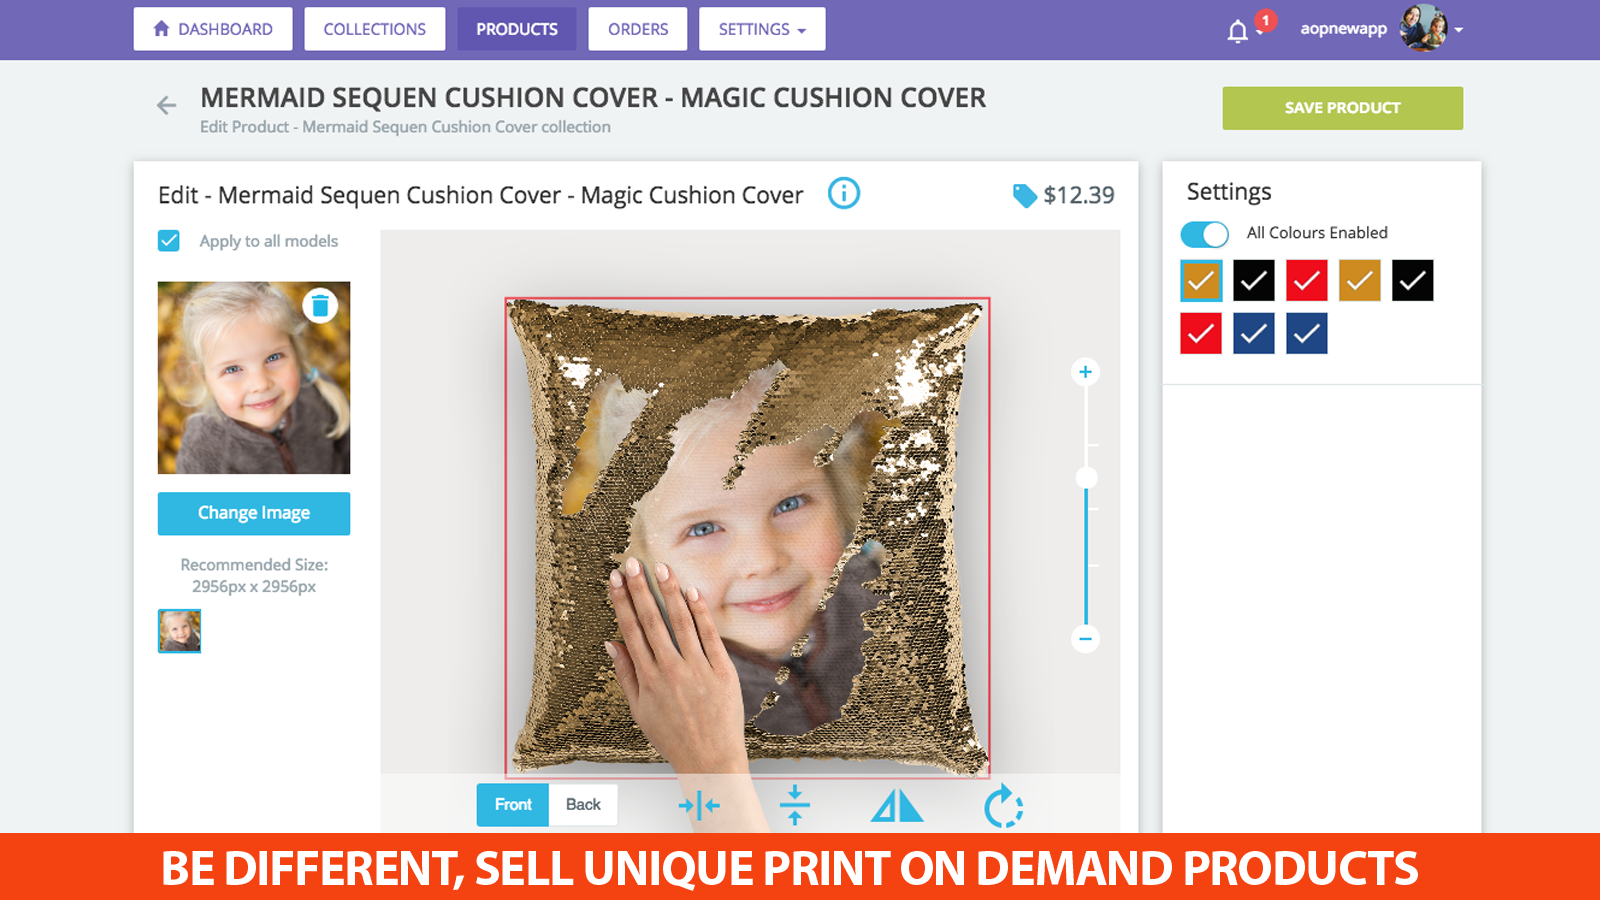 BE DIFFERENT, SELL UNIQUE PRINT ON DEMAND PRODUCTS